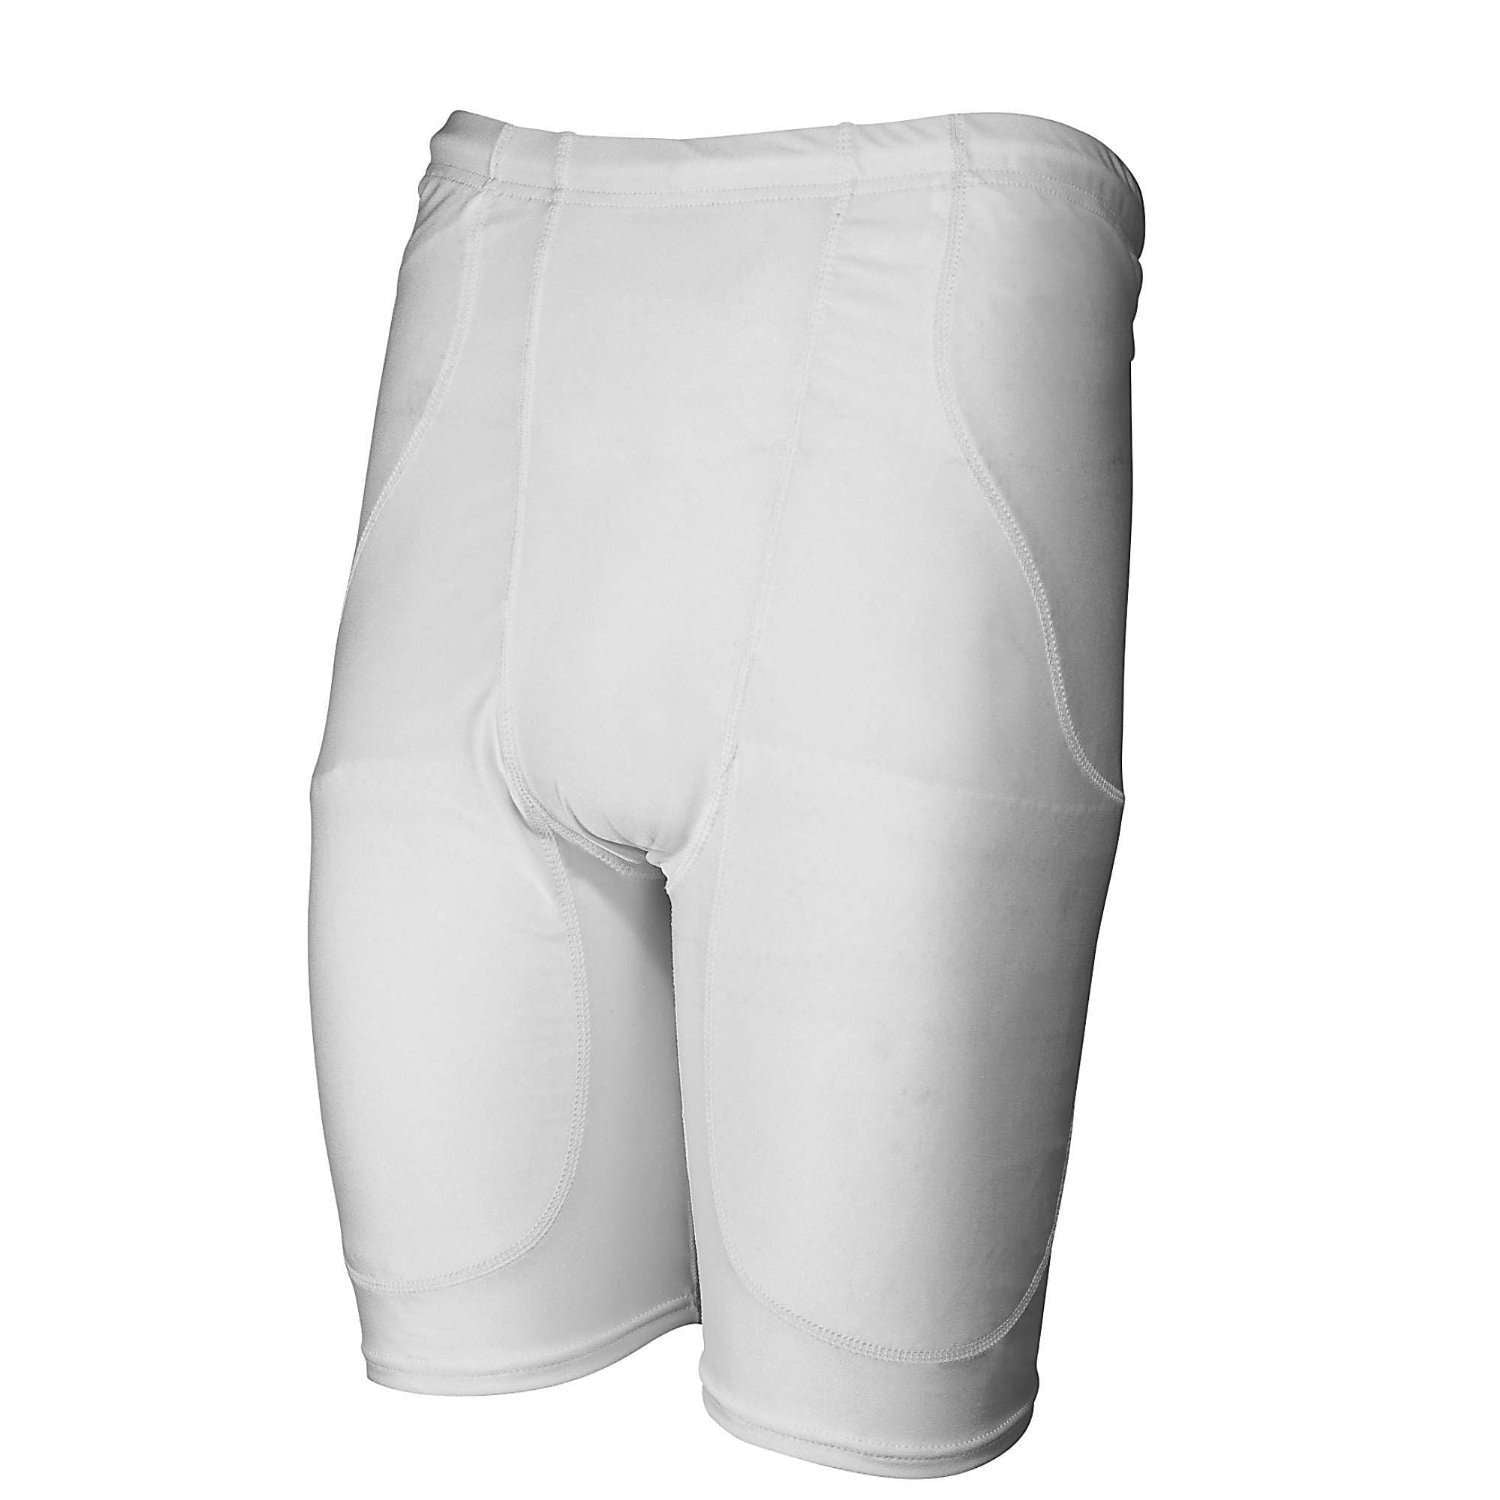 Rawlings Adult 5-Pocket Girdle - League Outfitters